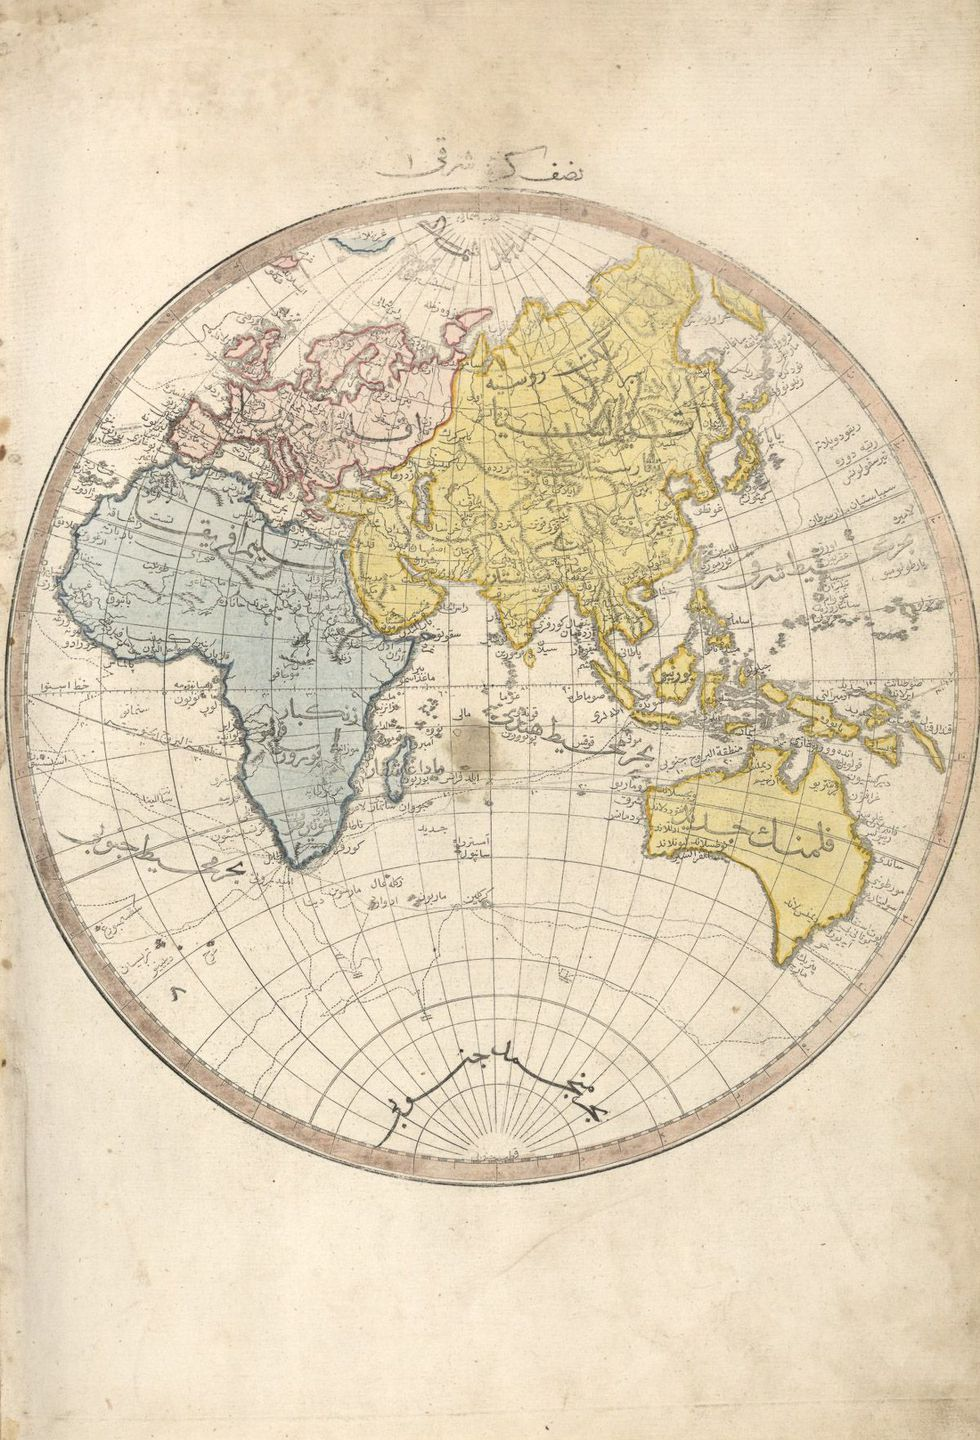 The Eastern Hemisphere.